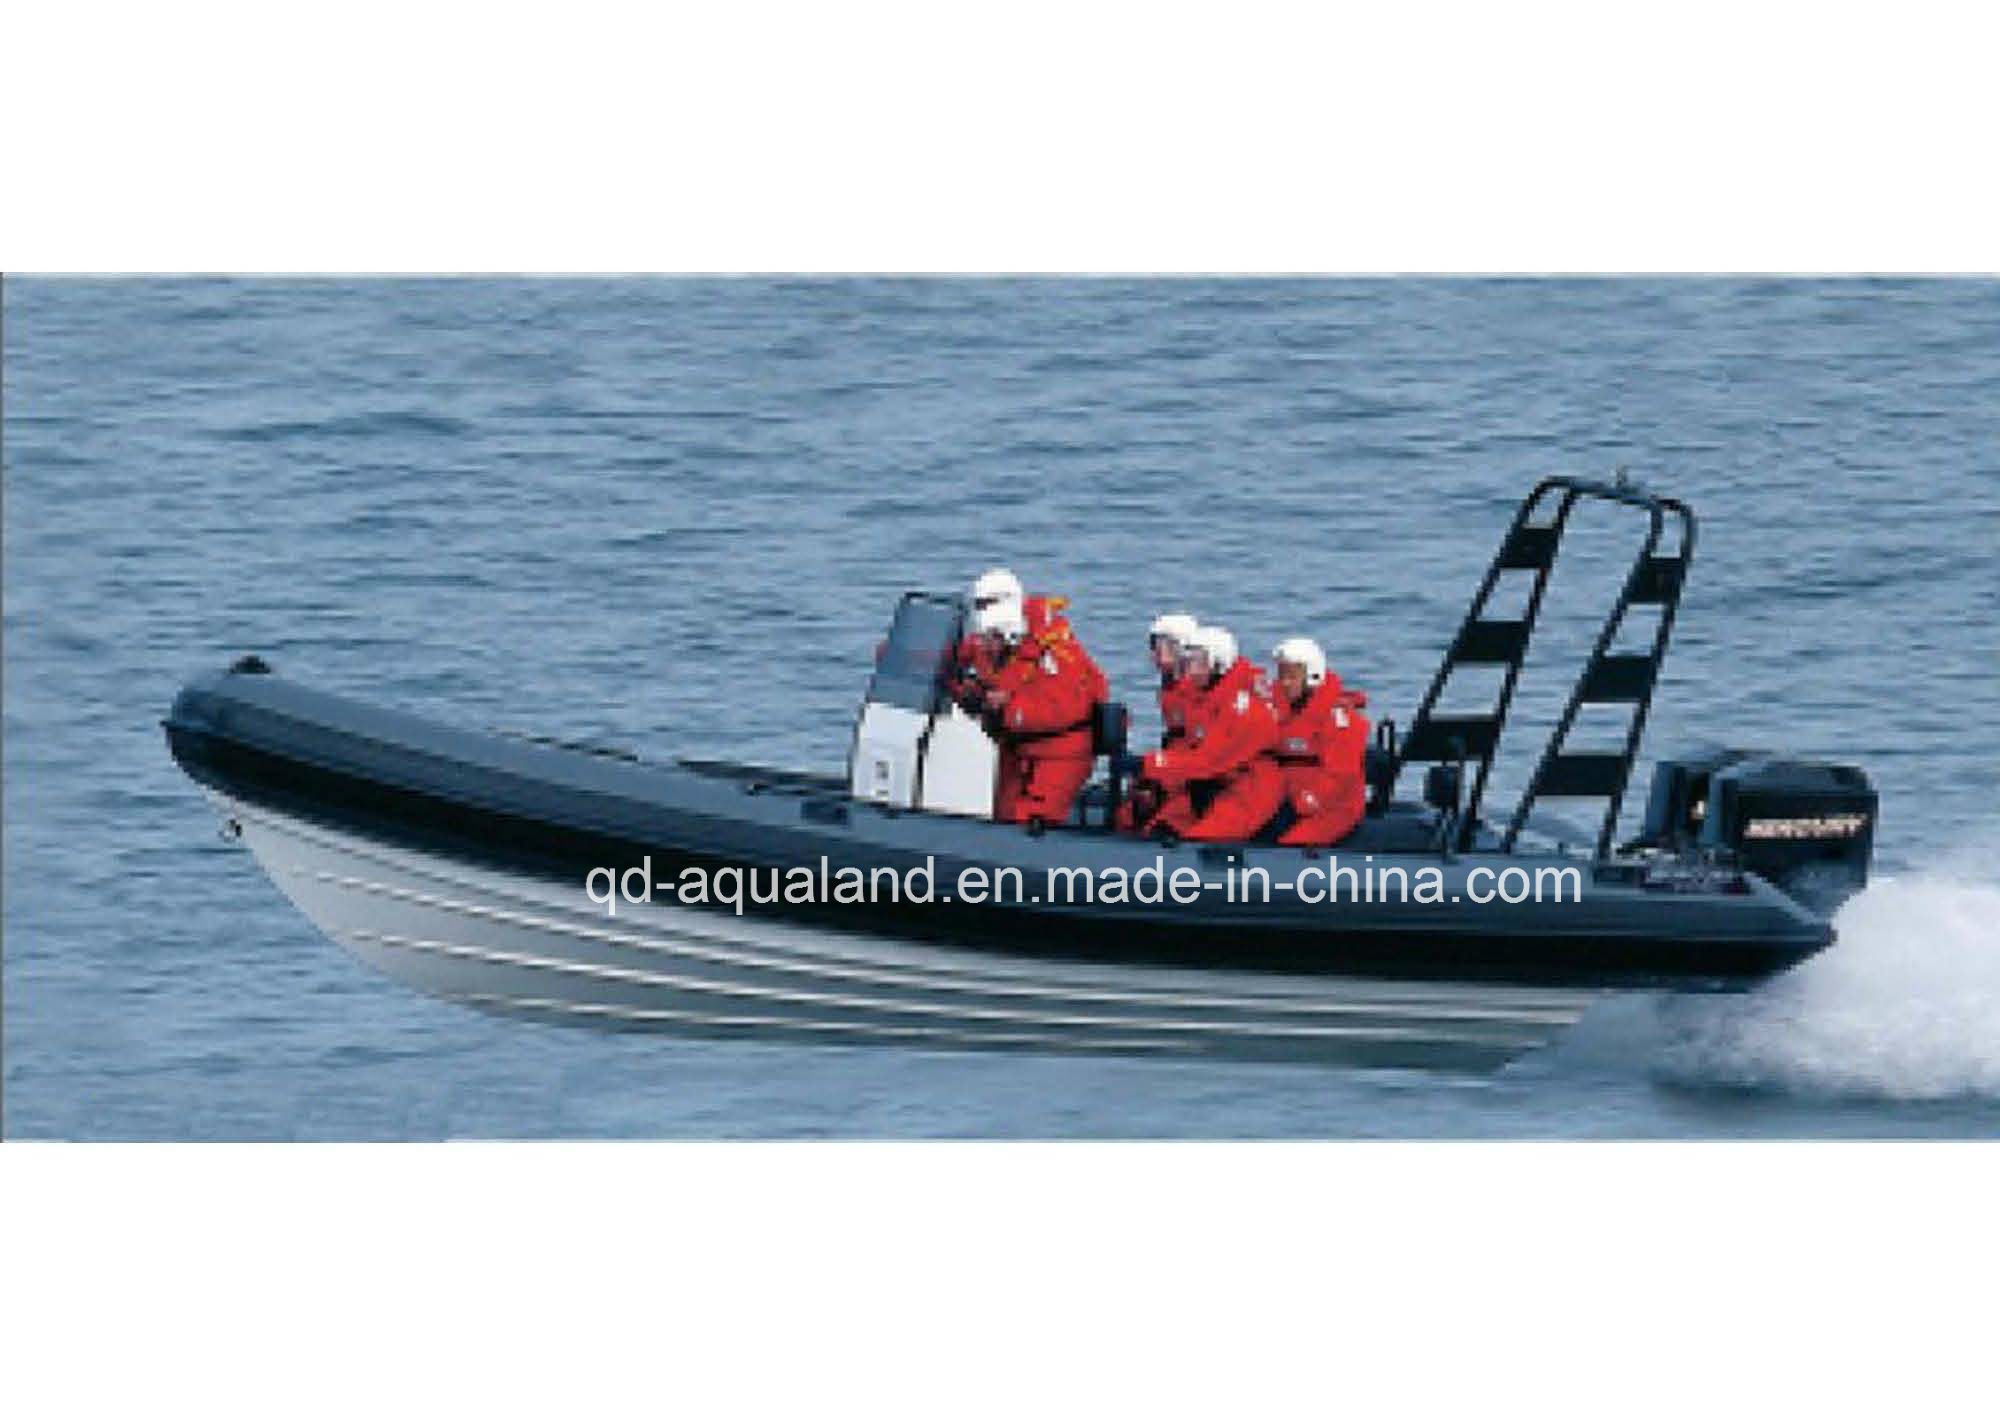 Aqualand 25feet 7.5m Fiberglass Rib Boat /Military Rigid Inflatable Boat (RIB750B)